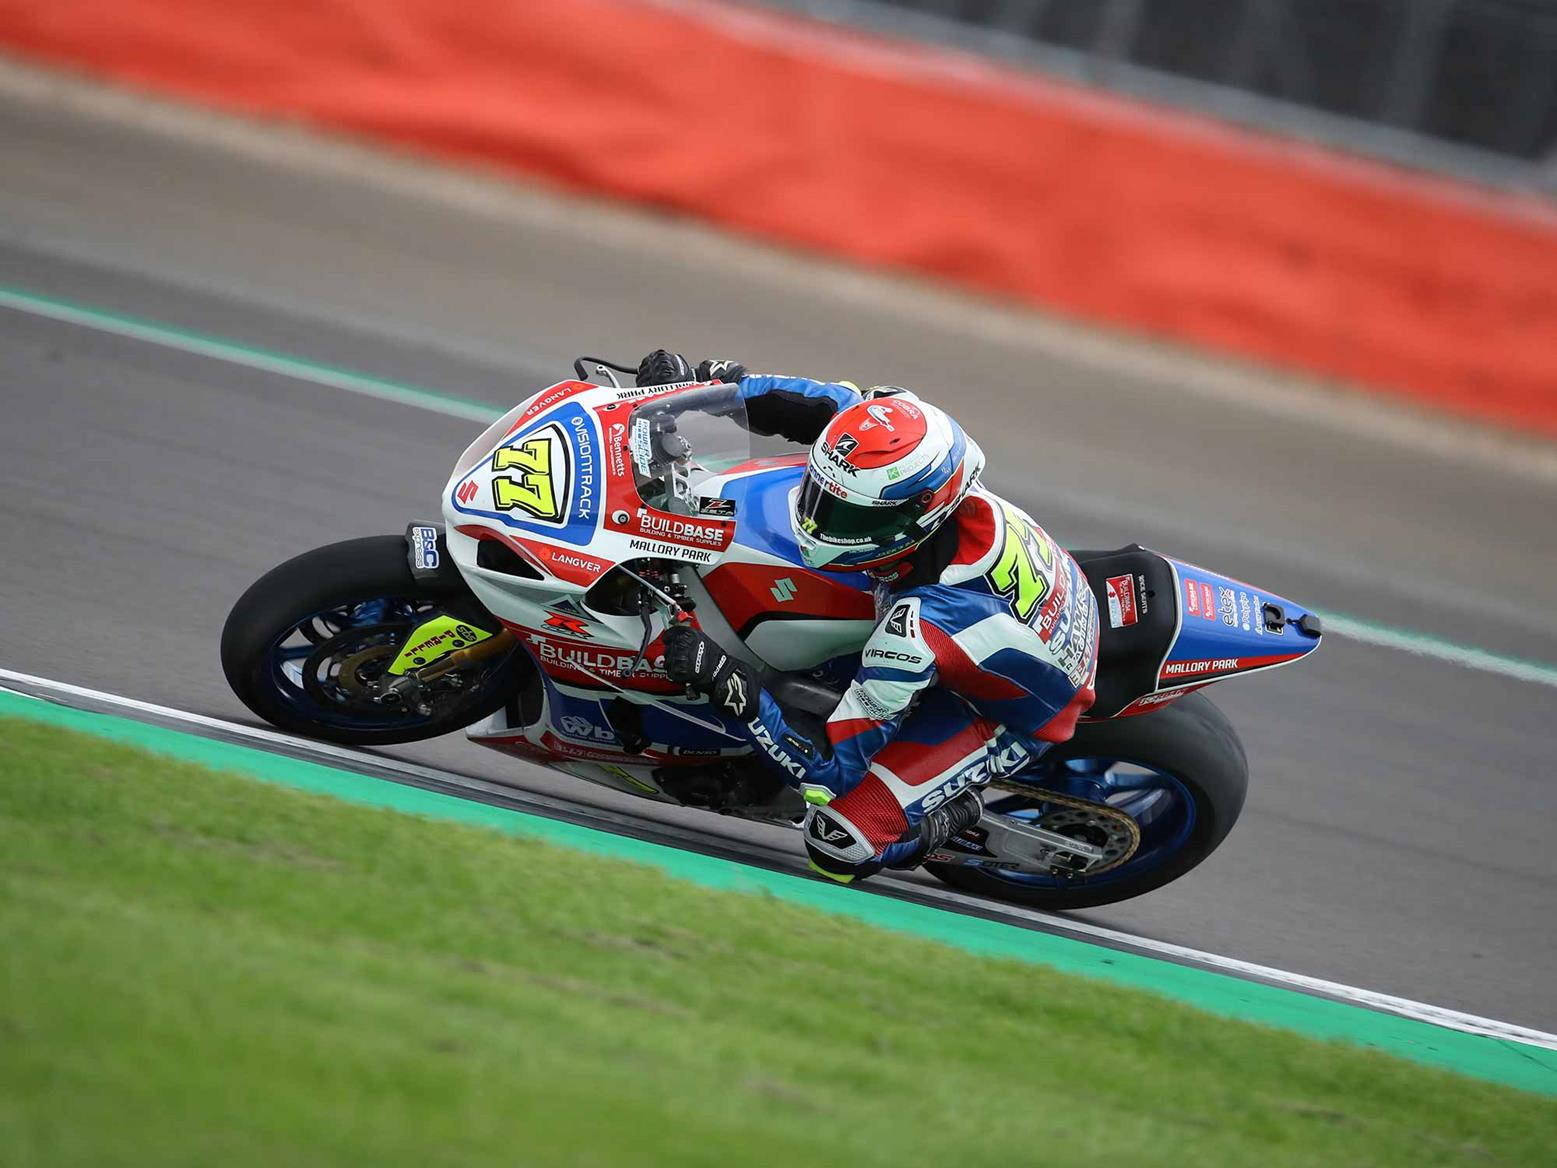 Kyle Ryde tops FP2 Silverstone